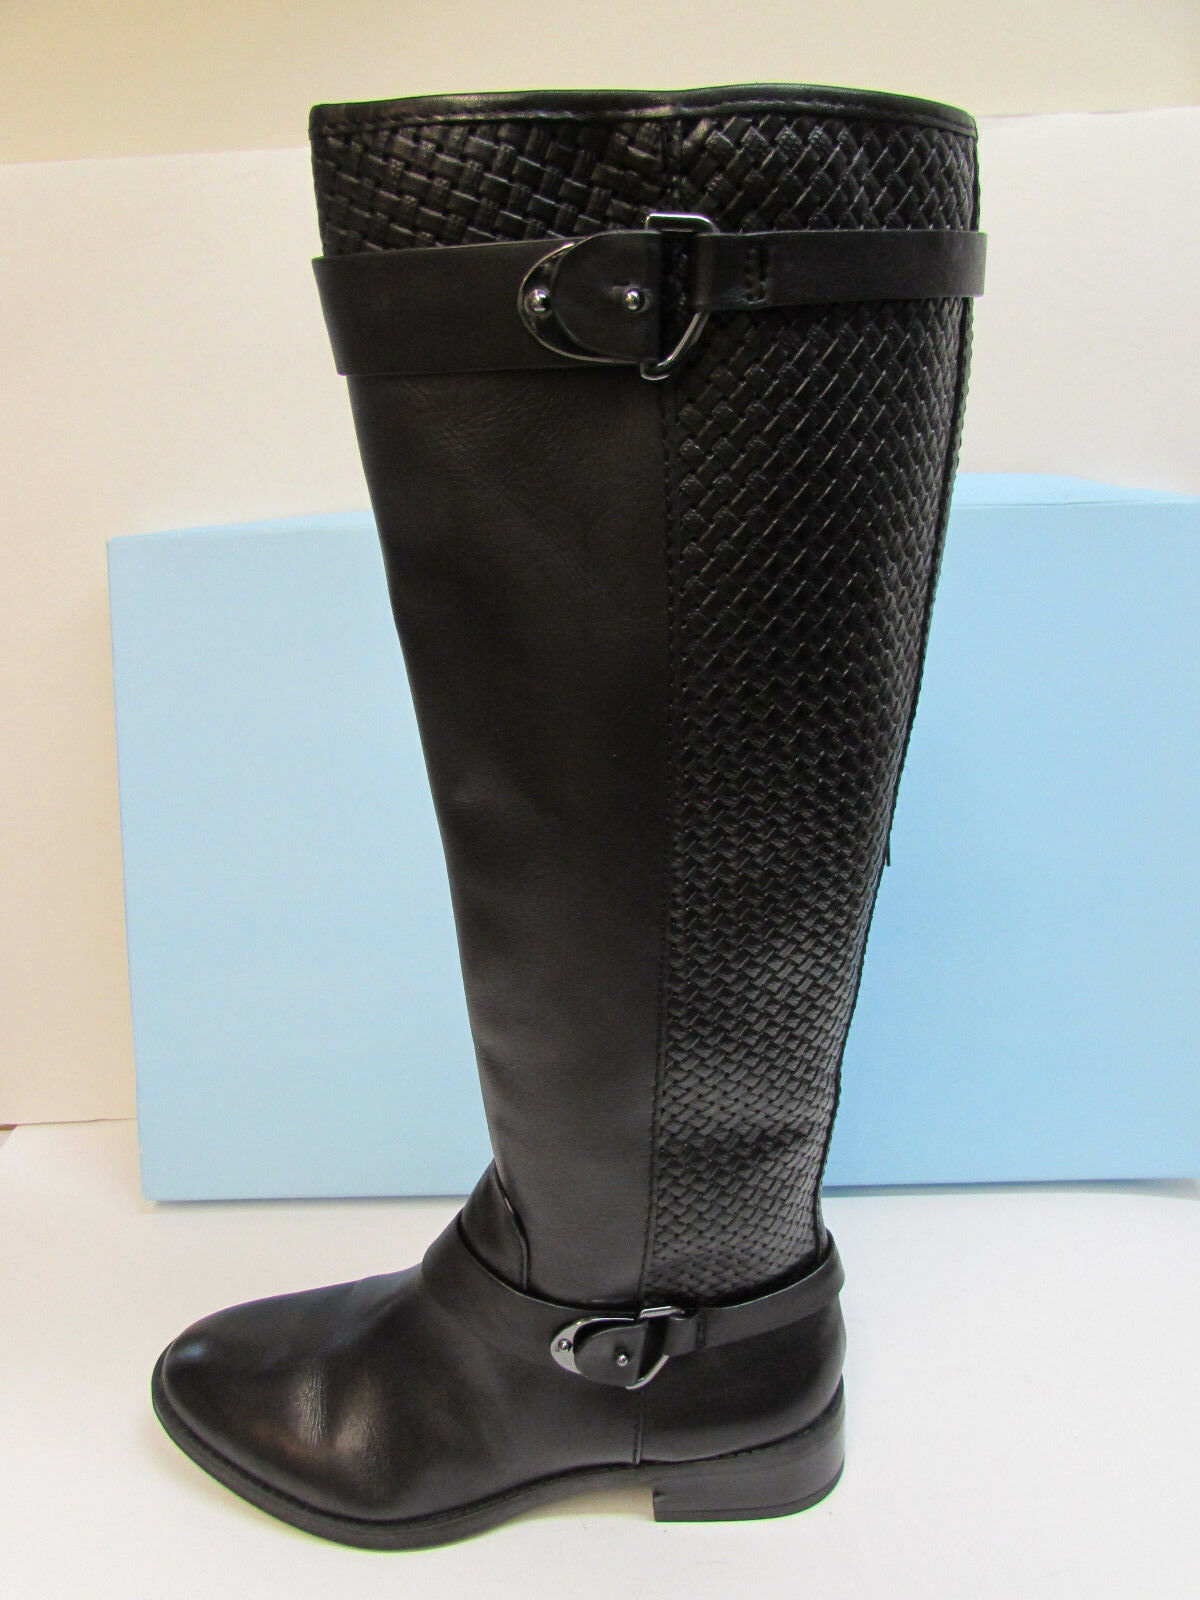 Antonio Melani Size 6.5 Black Leather Knee High Boots New Womens shoes